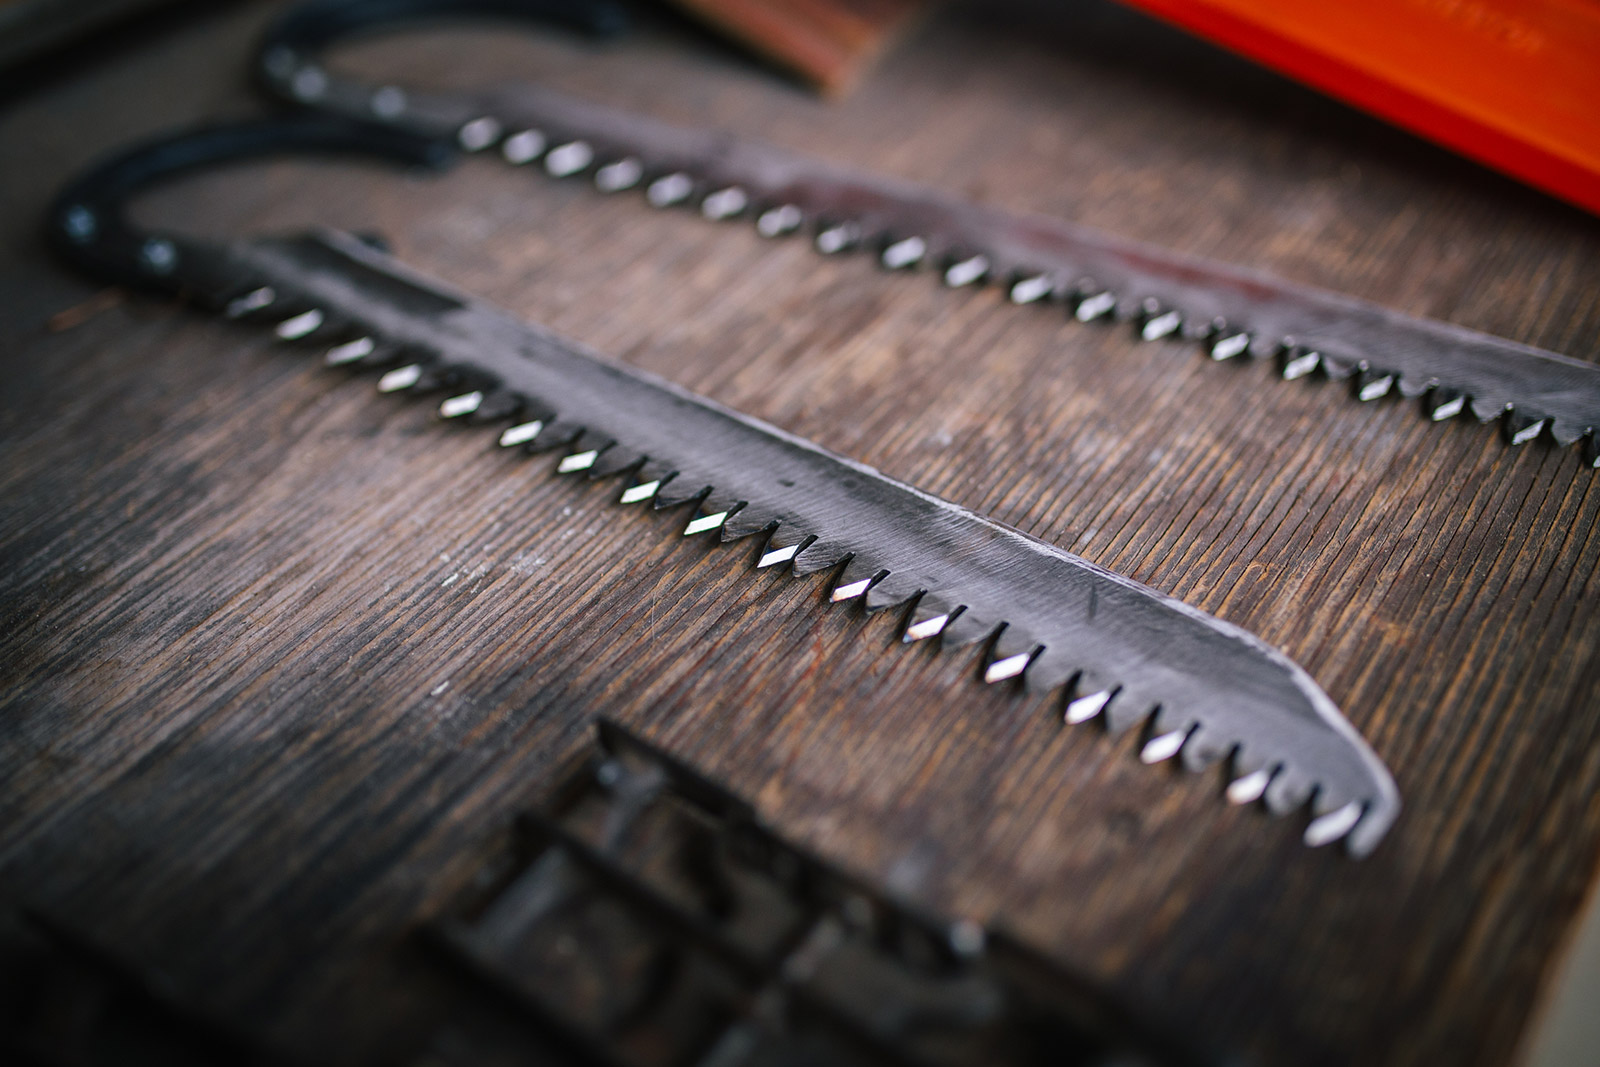 In this Montana photography session, Phil Crist shows his hand-built saw.